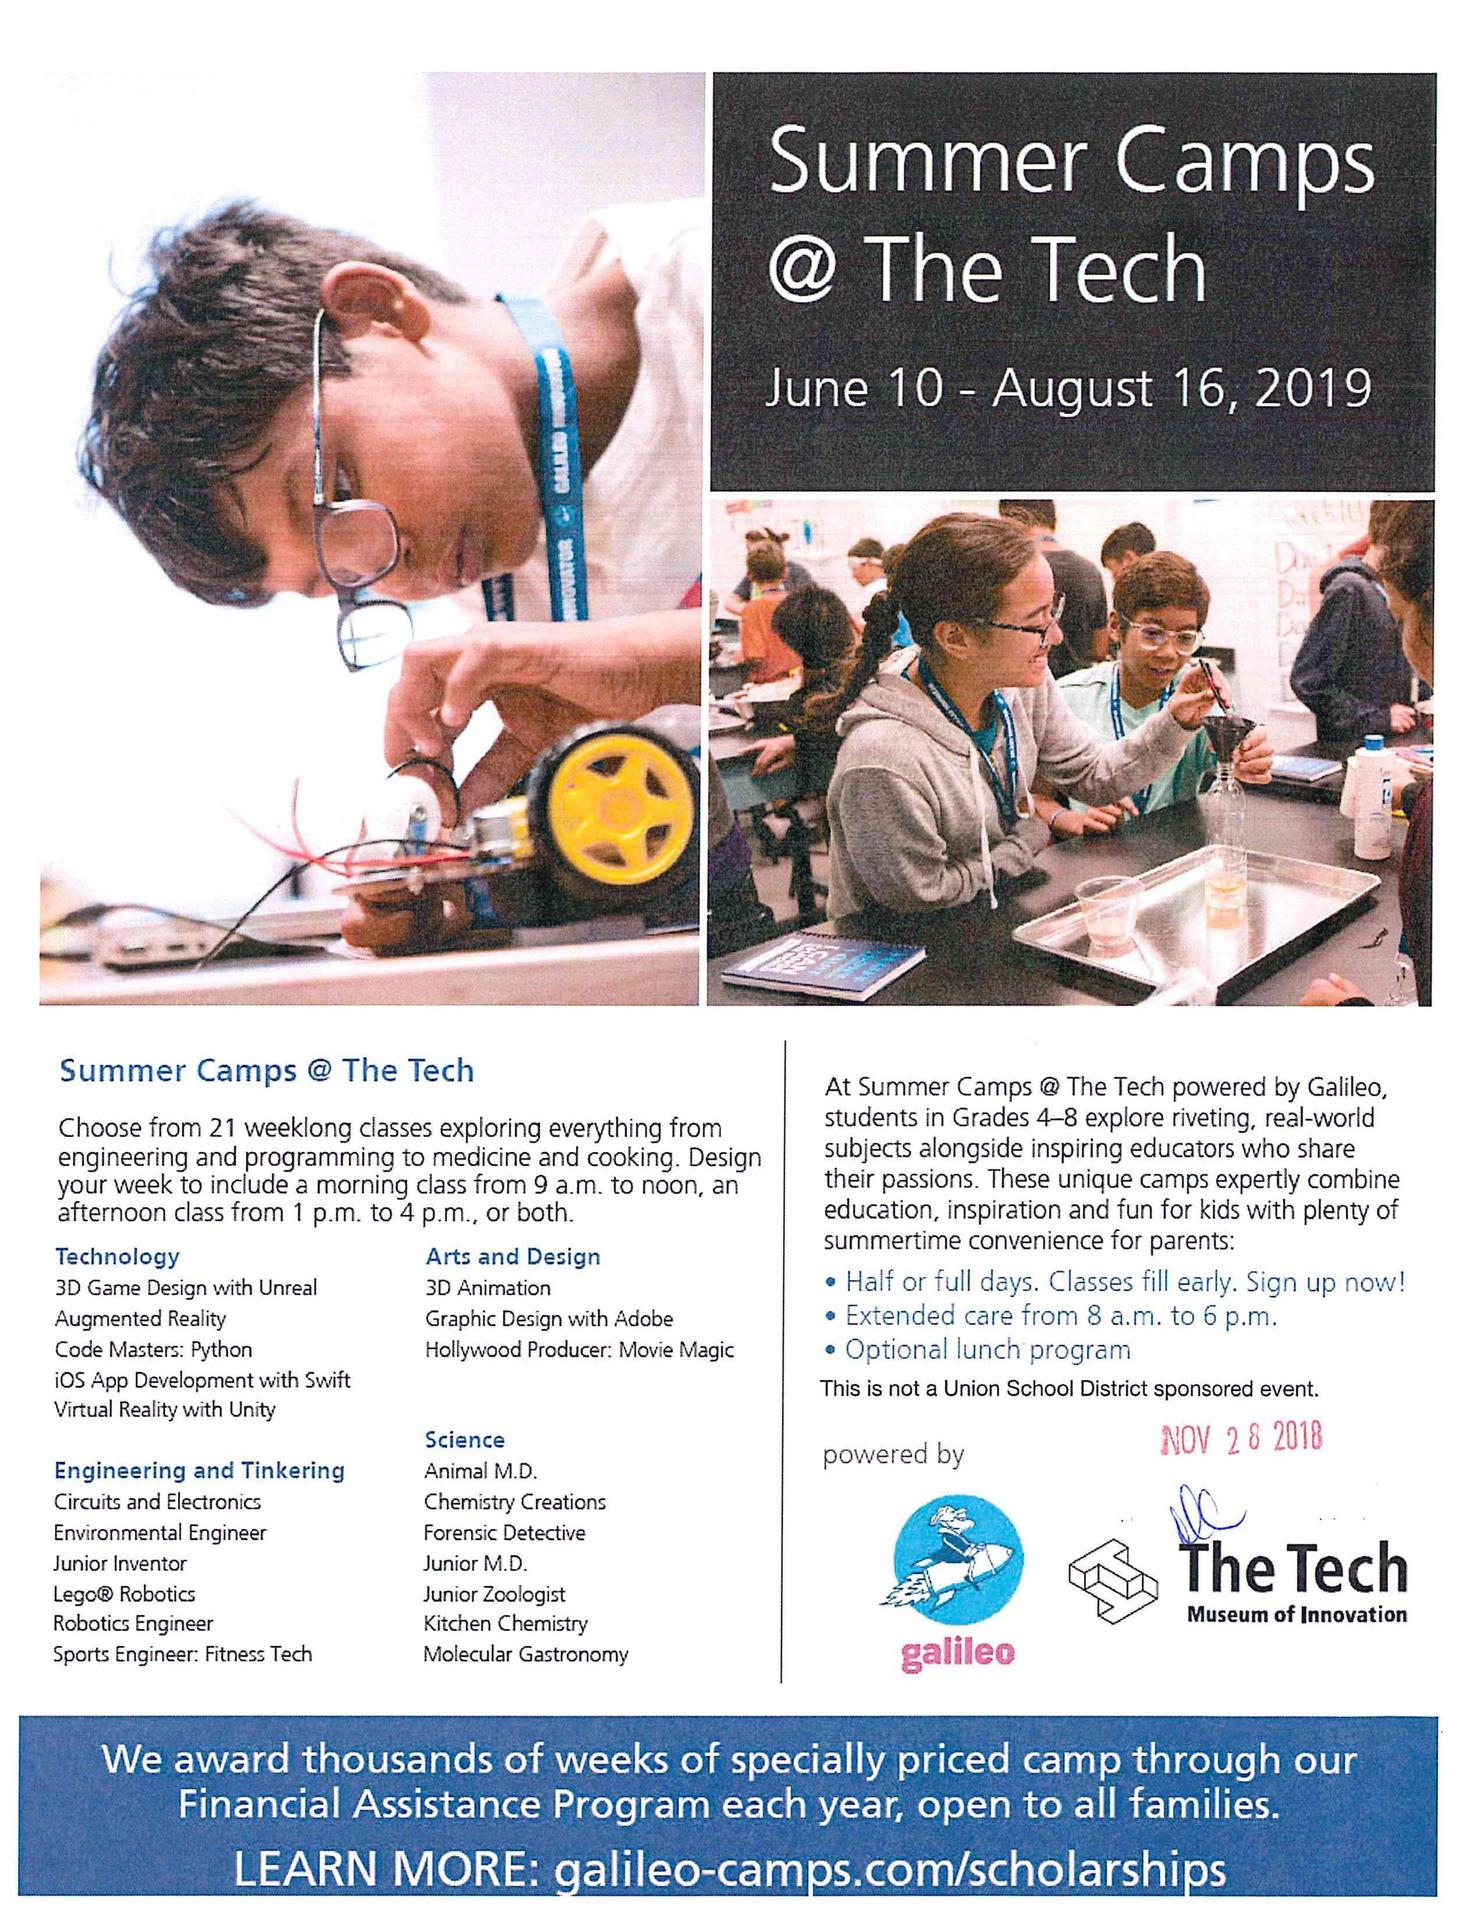 Galileo Summer Camp at the Tech